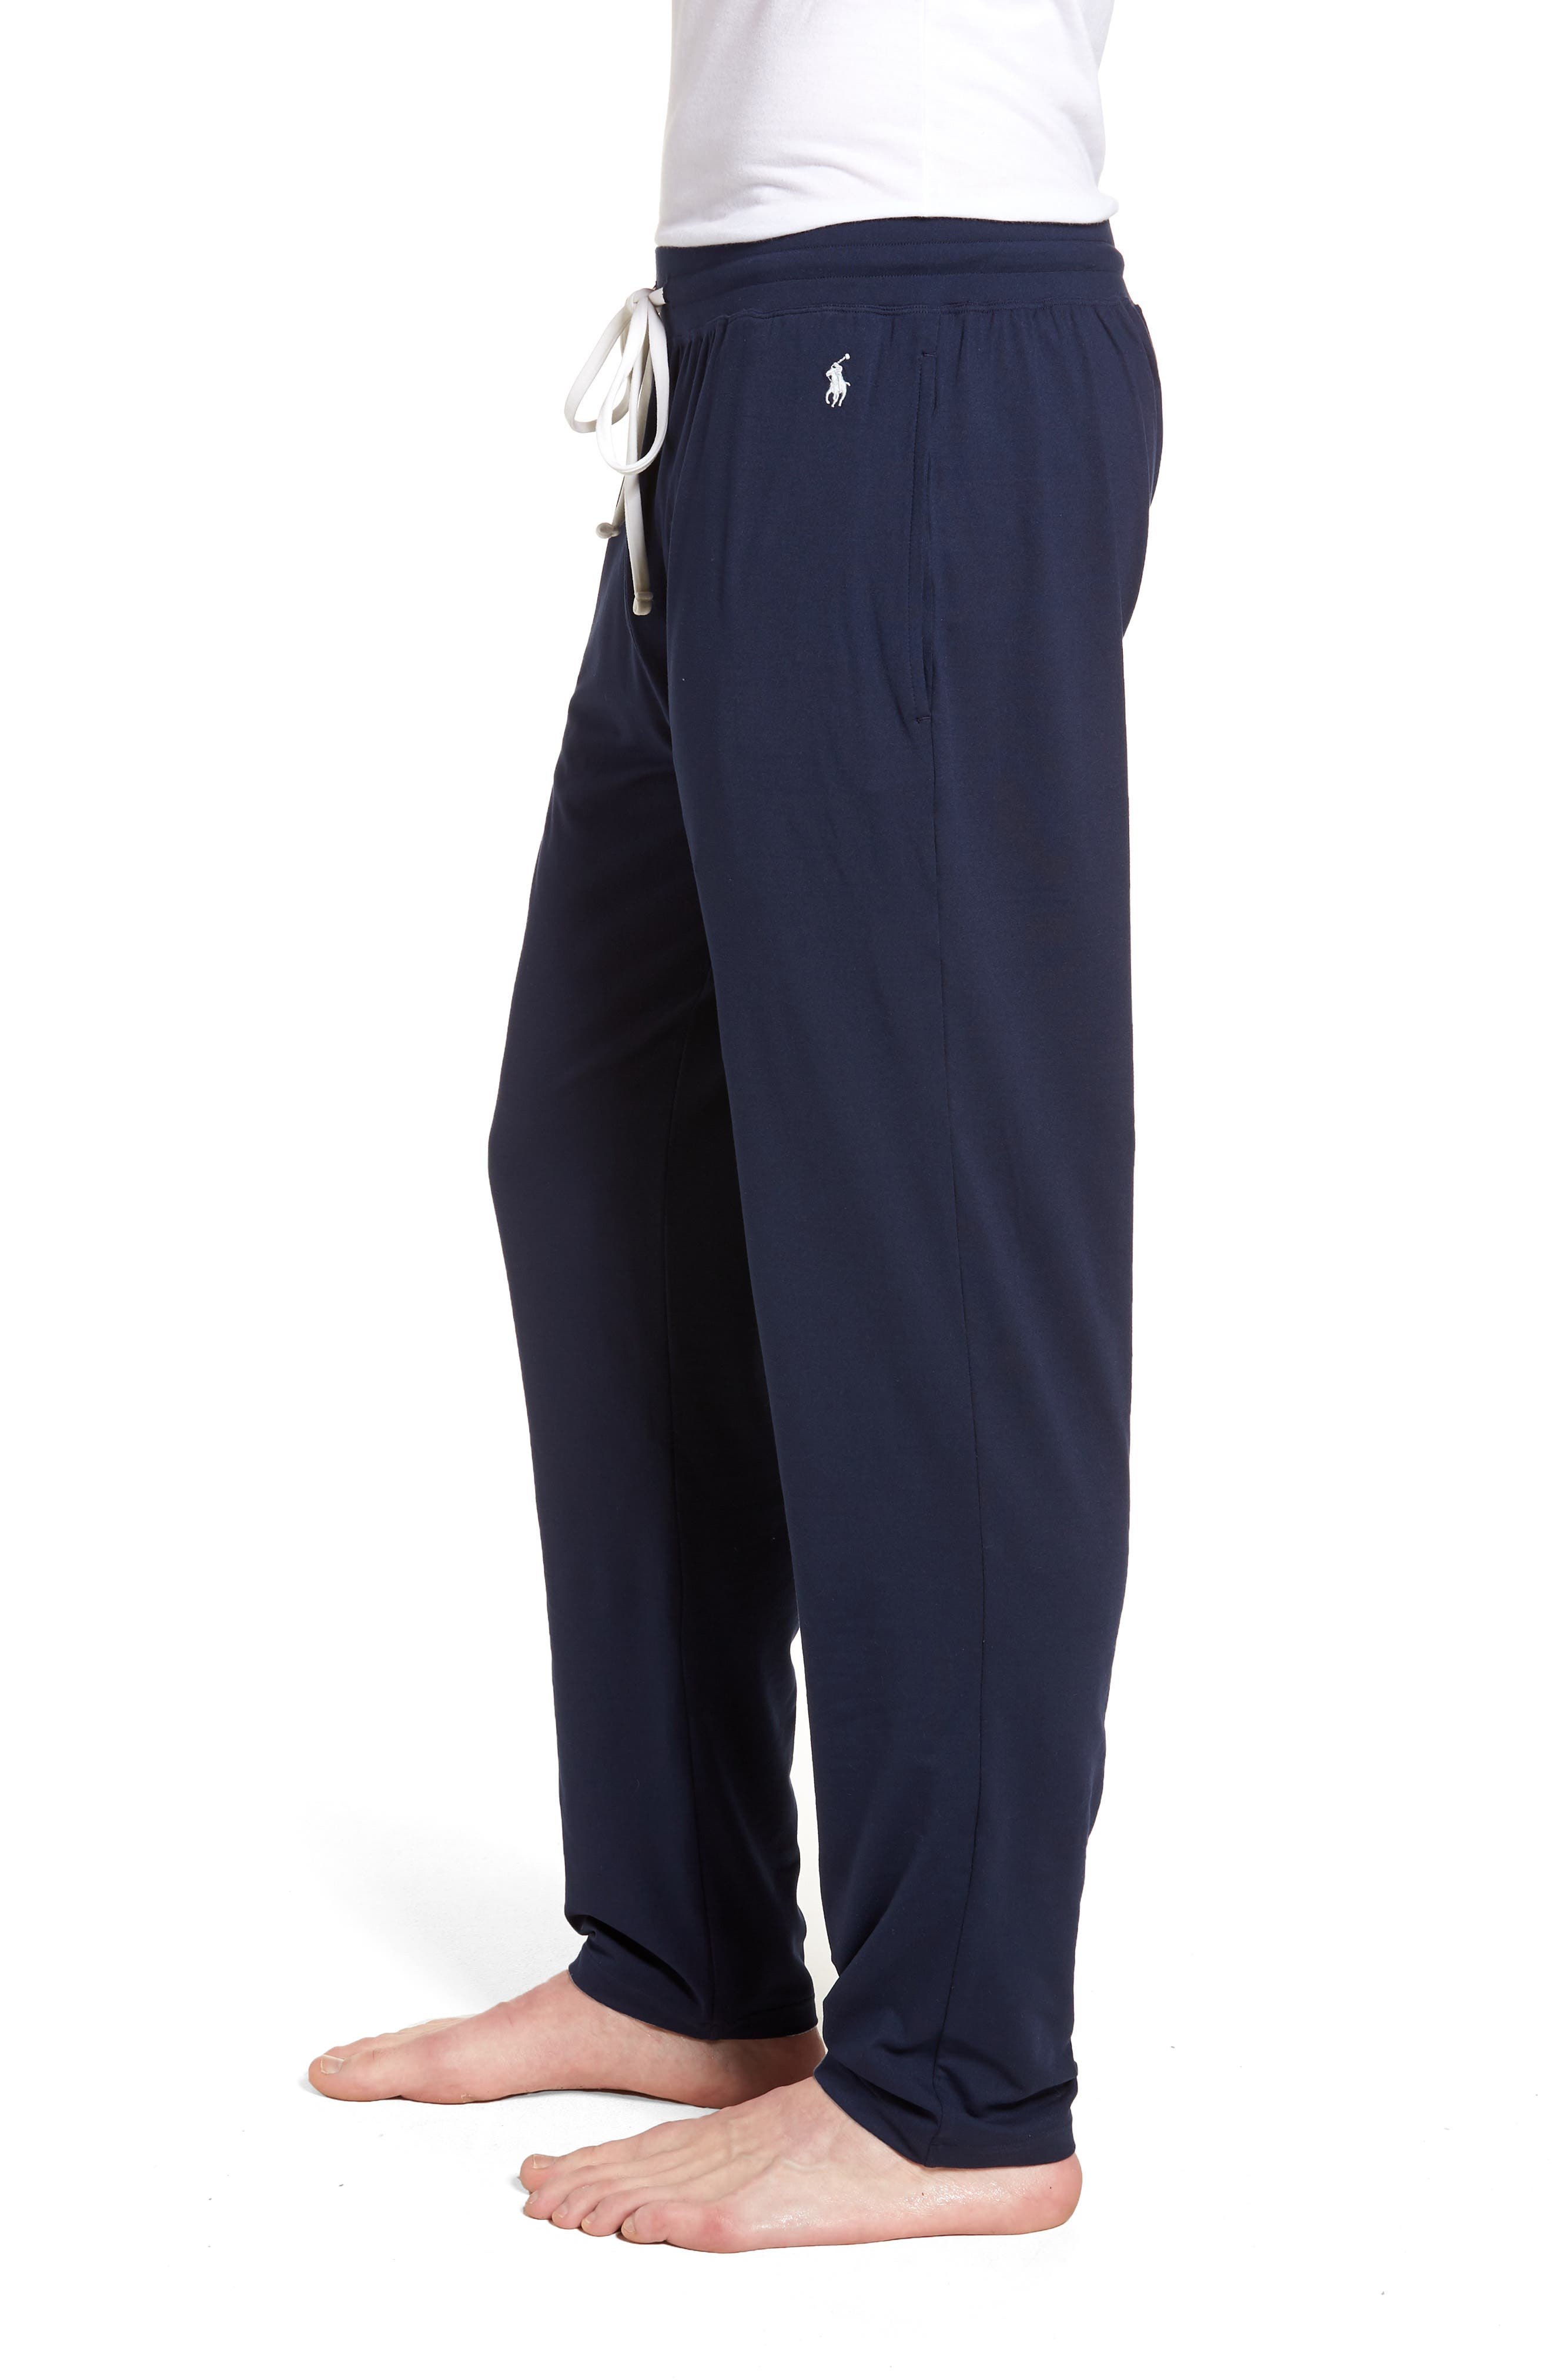 Therma Lounge Pants,                             Alternate thumbnail 3, color,                             Cruise Navy/ Nevis